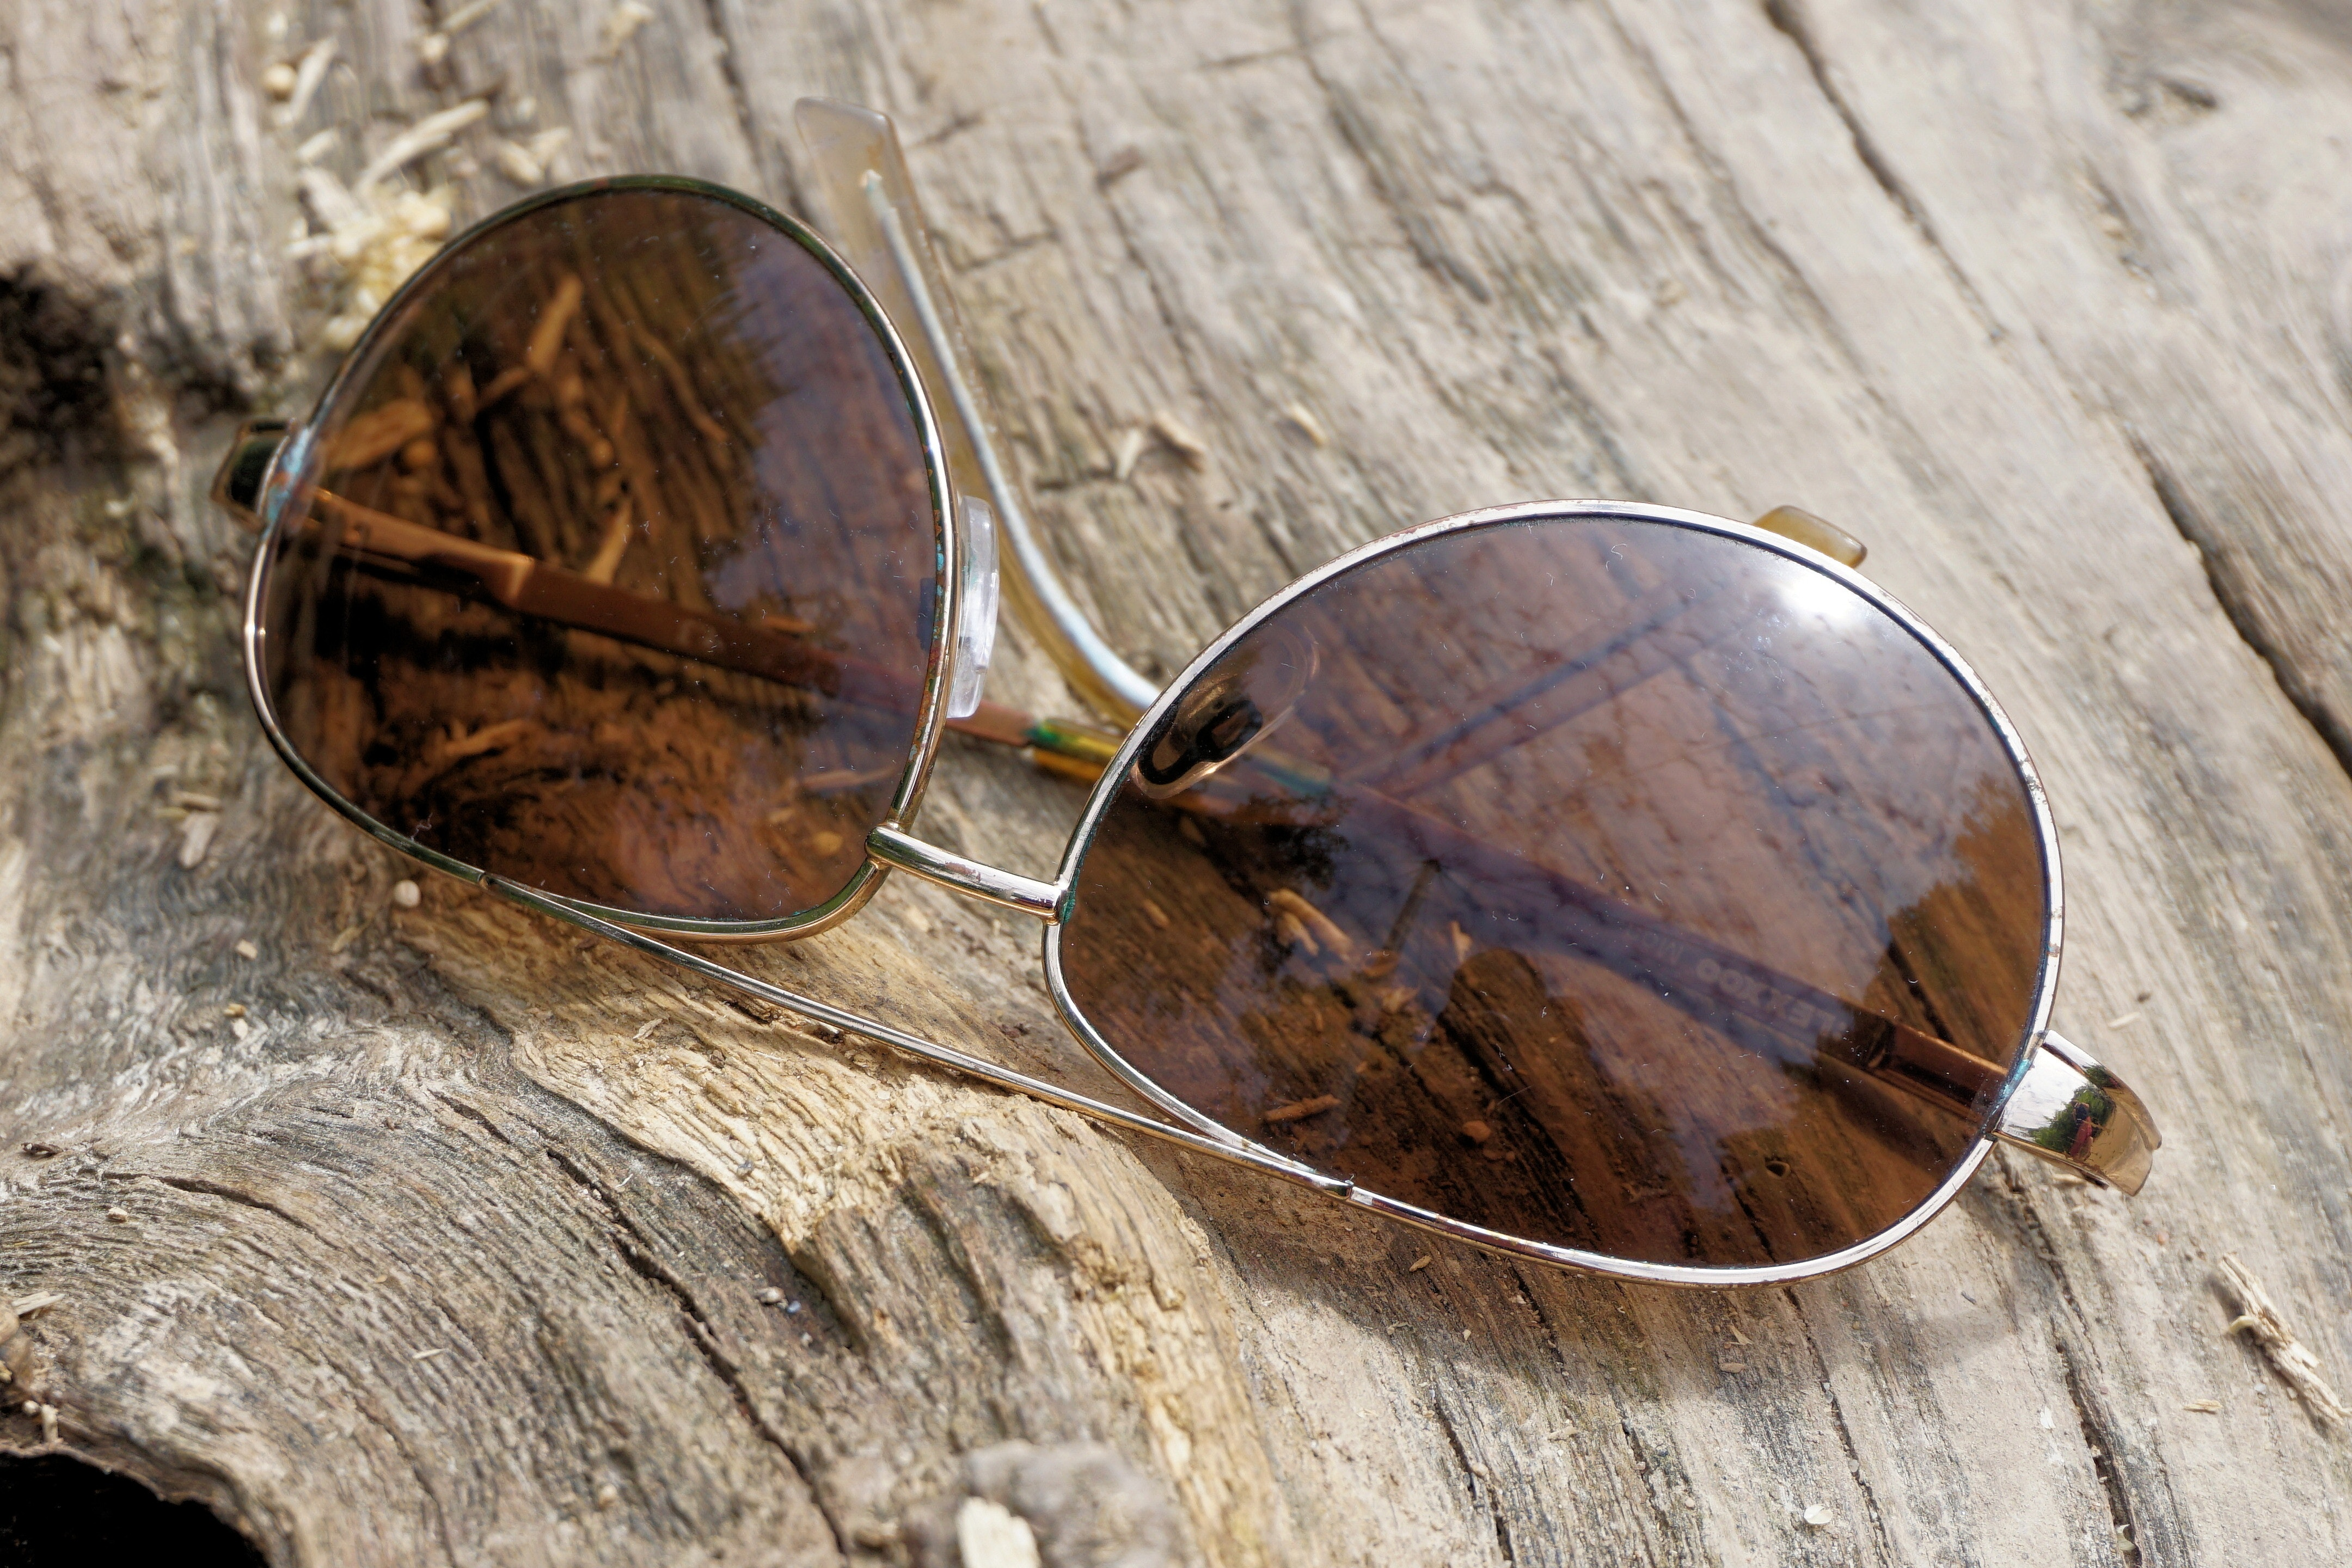 e7ecd4dac8 Silver Aviator Sunglasses on Top of Wooden Surface · Free Stock Photo